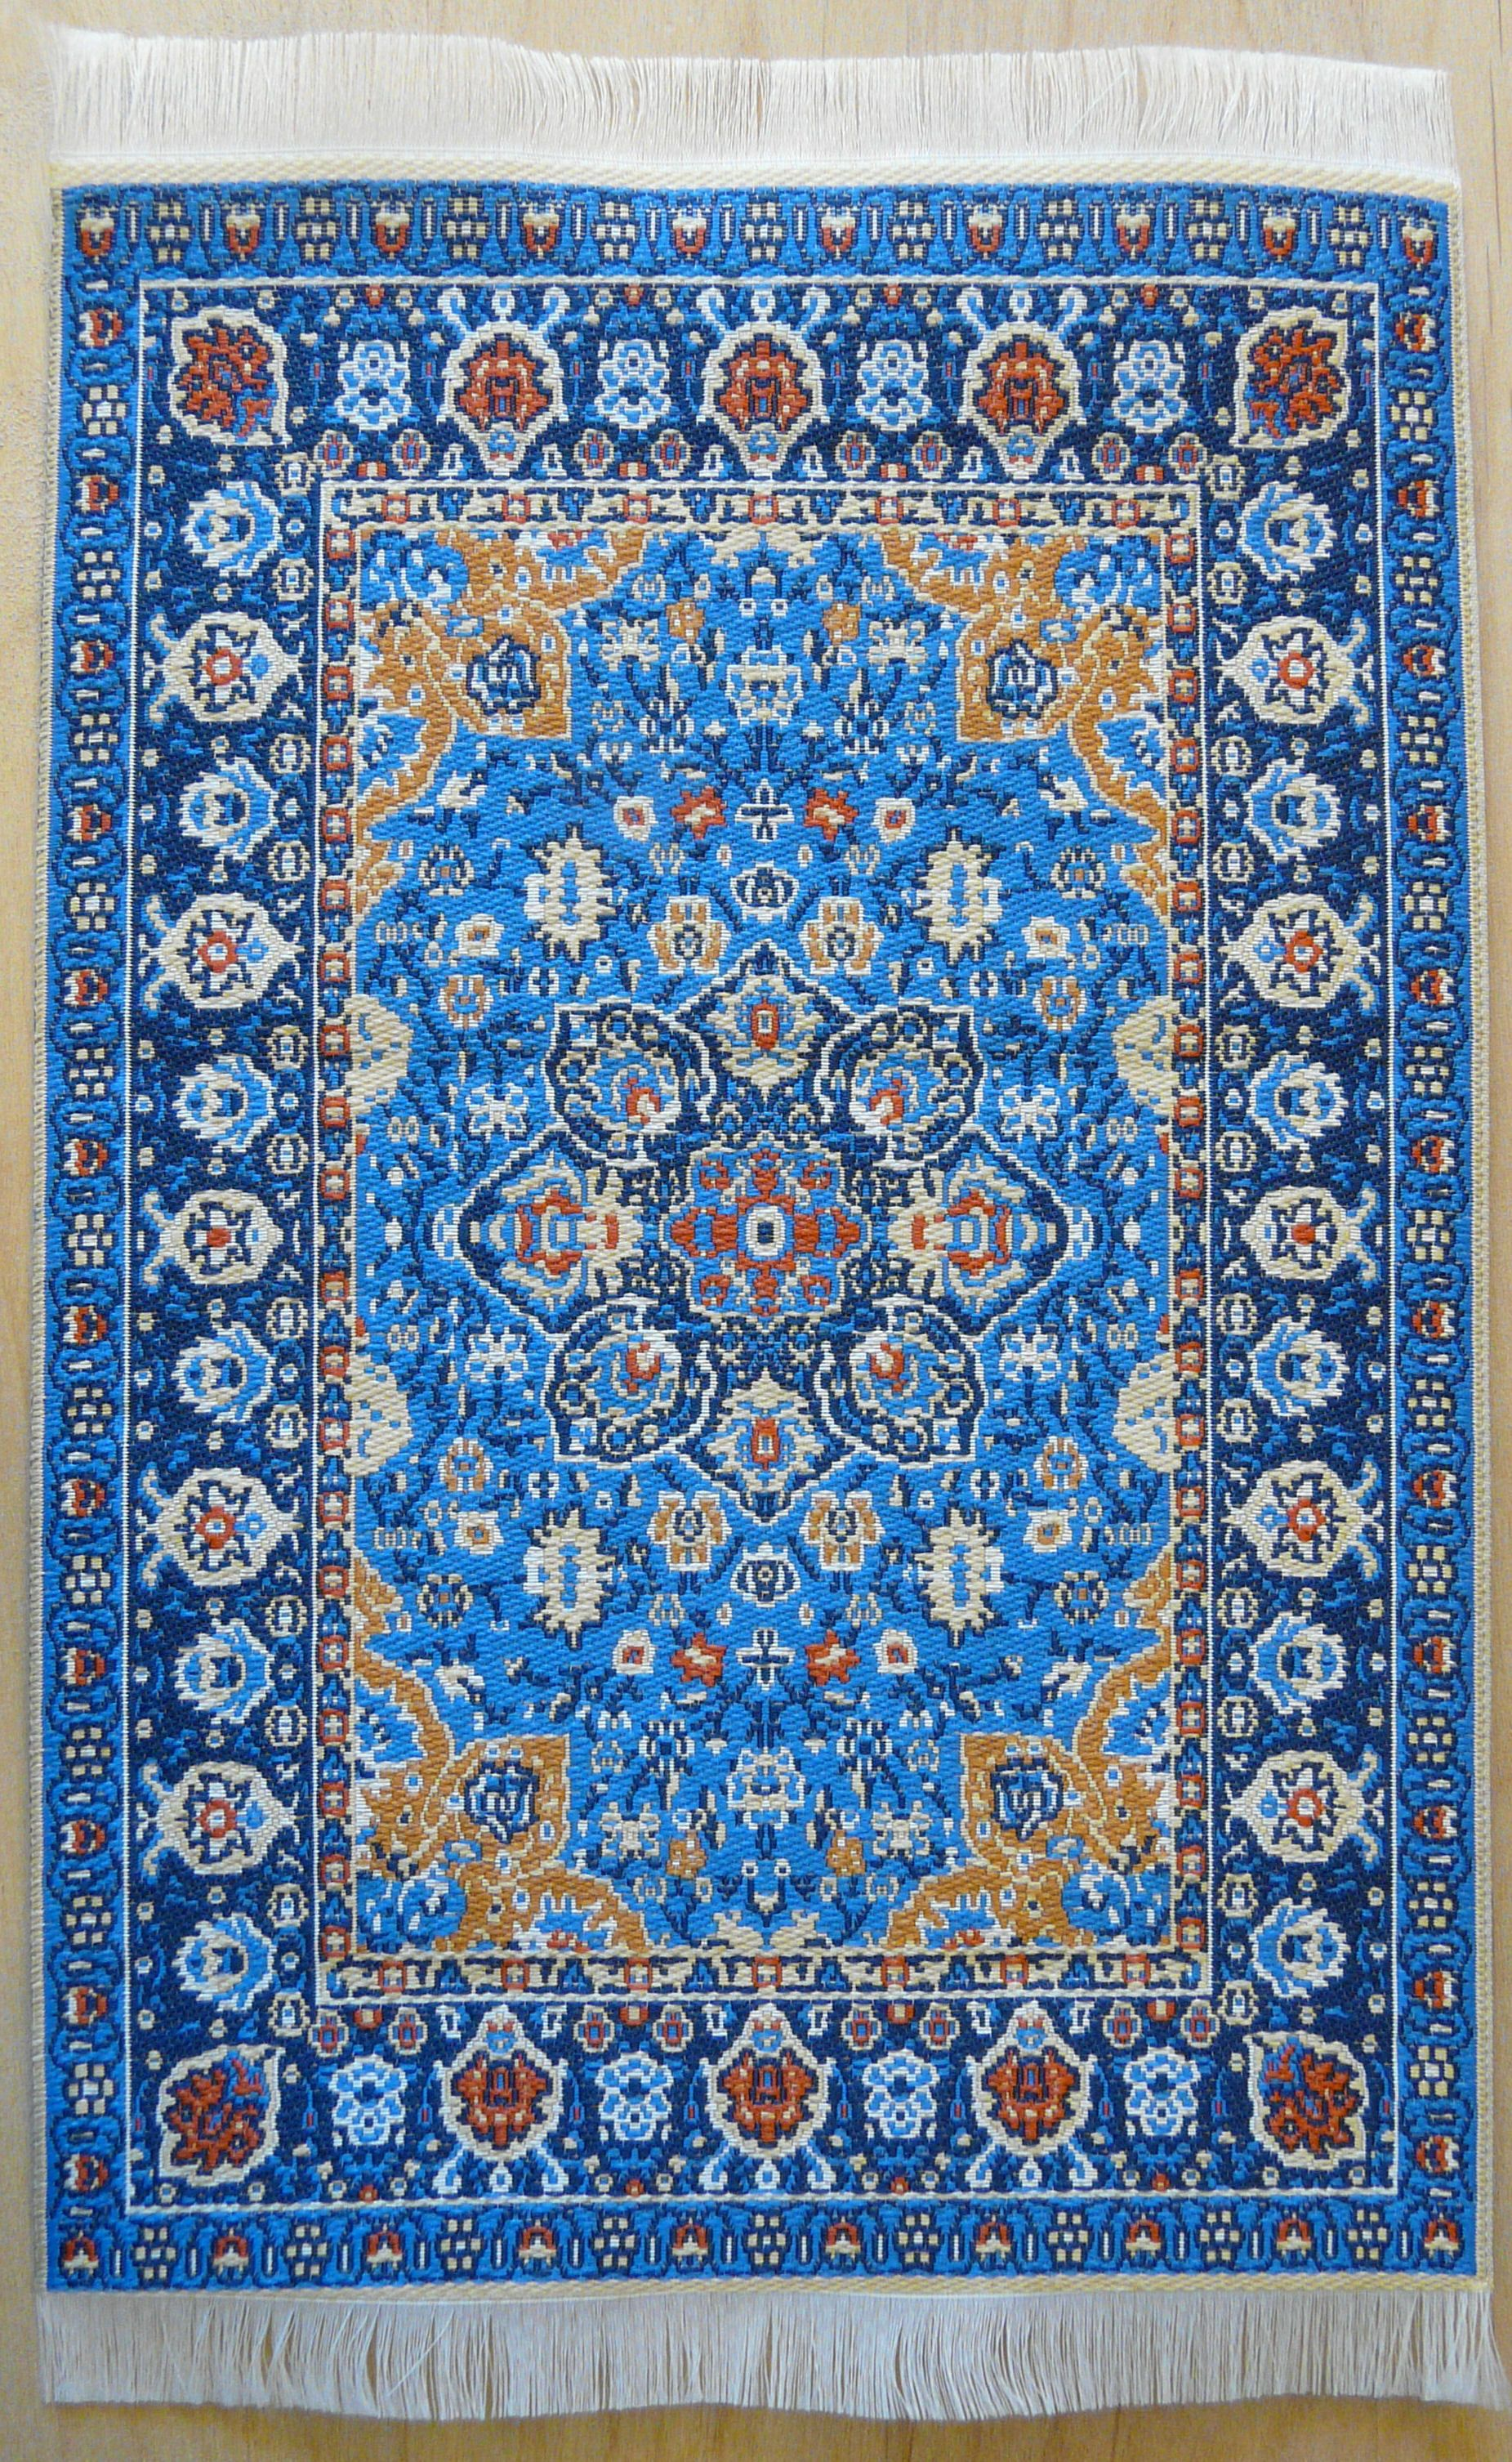 Turkish carpets blue turkish rug w/persian influence in design BBUHWBC